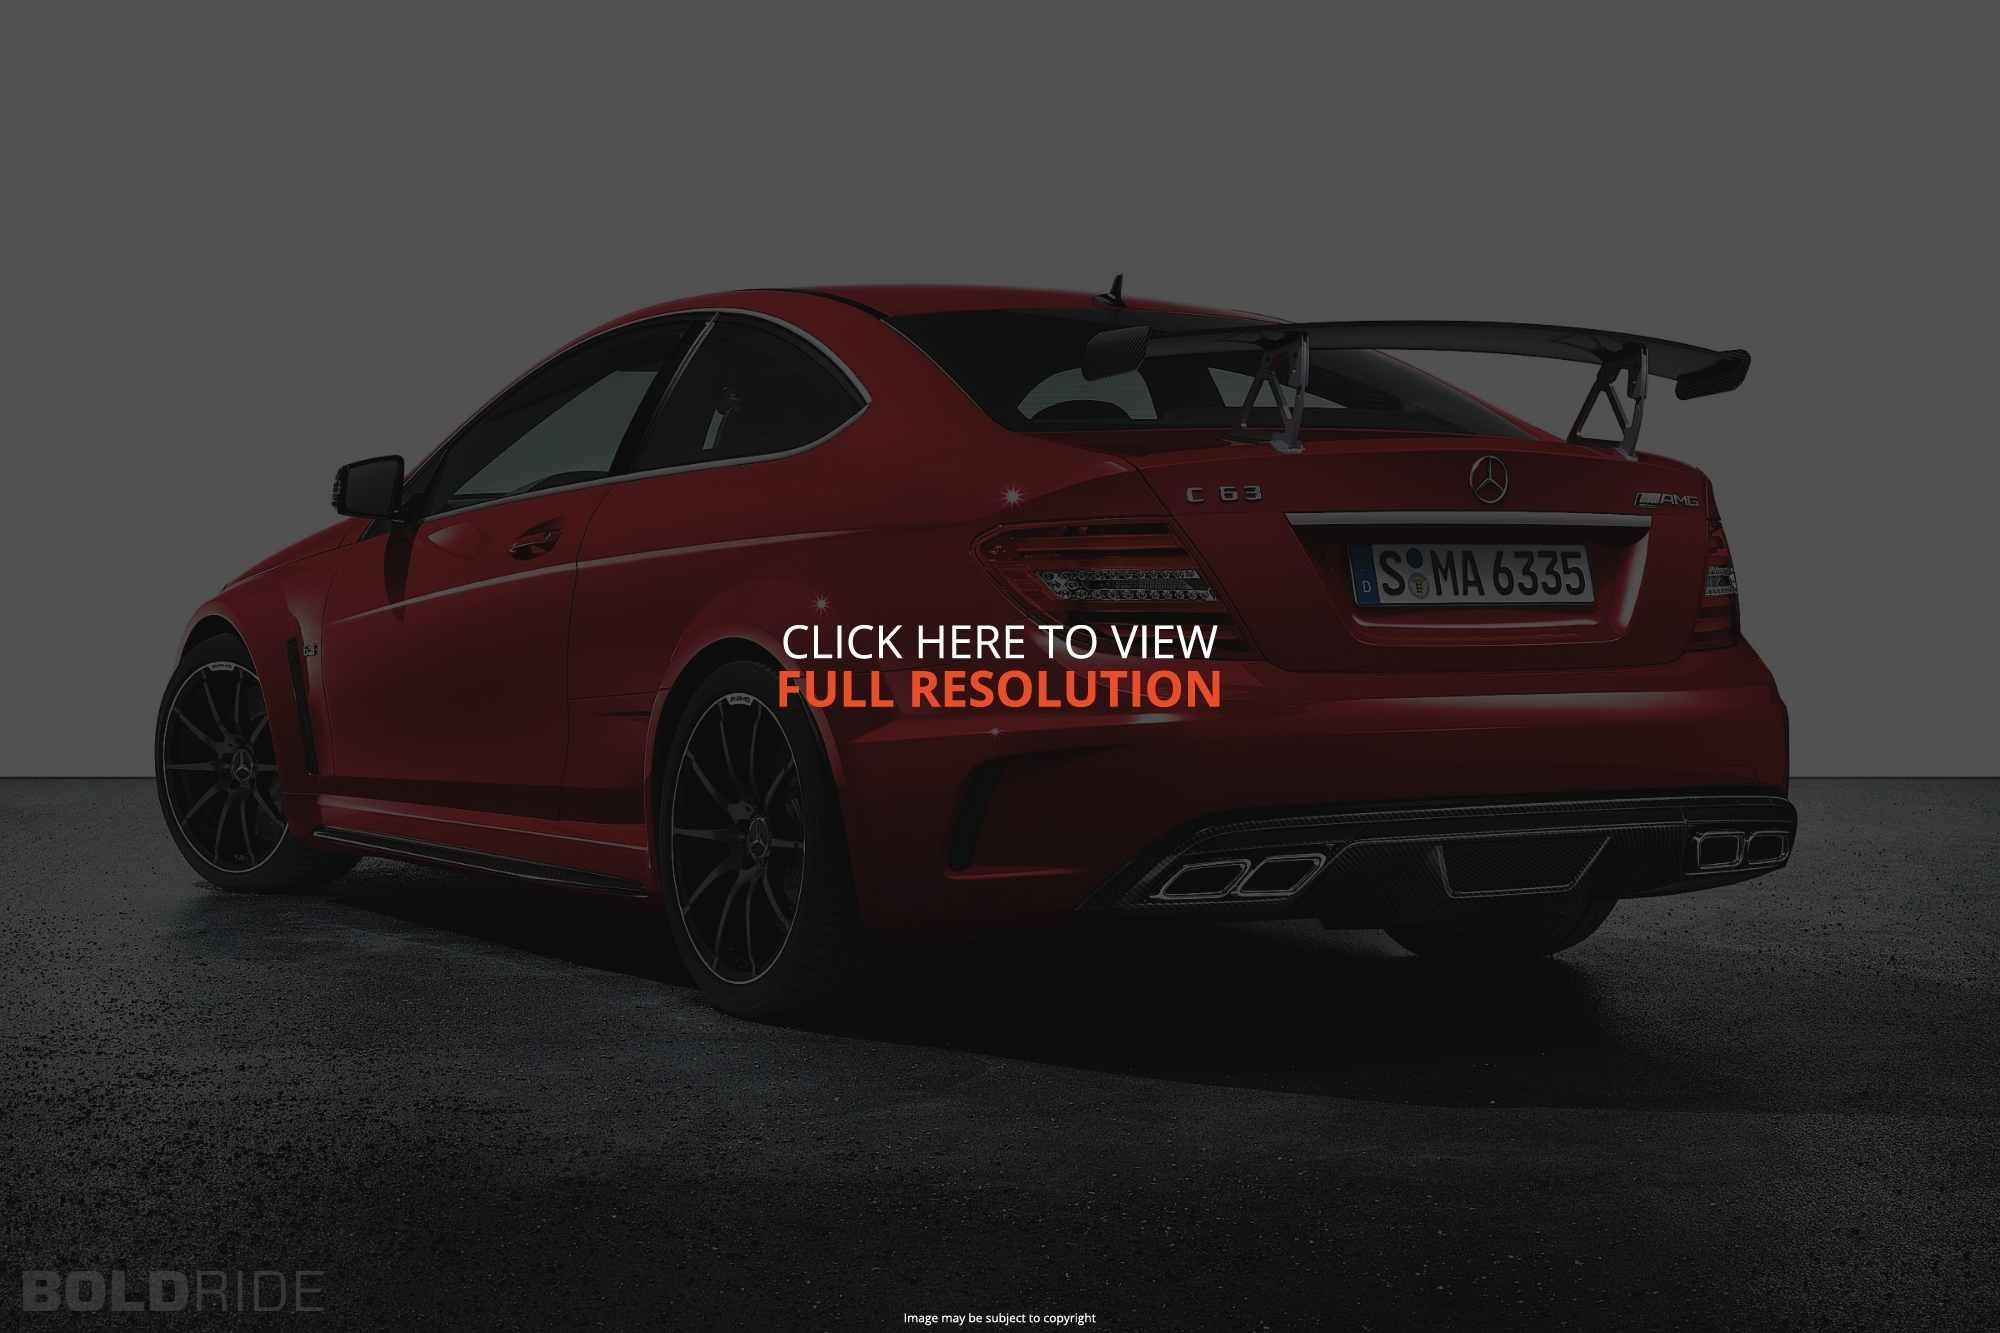 Mercedes-Benz C-Class C63 AMG Black Series #23